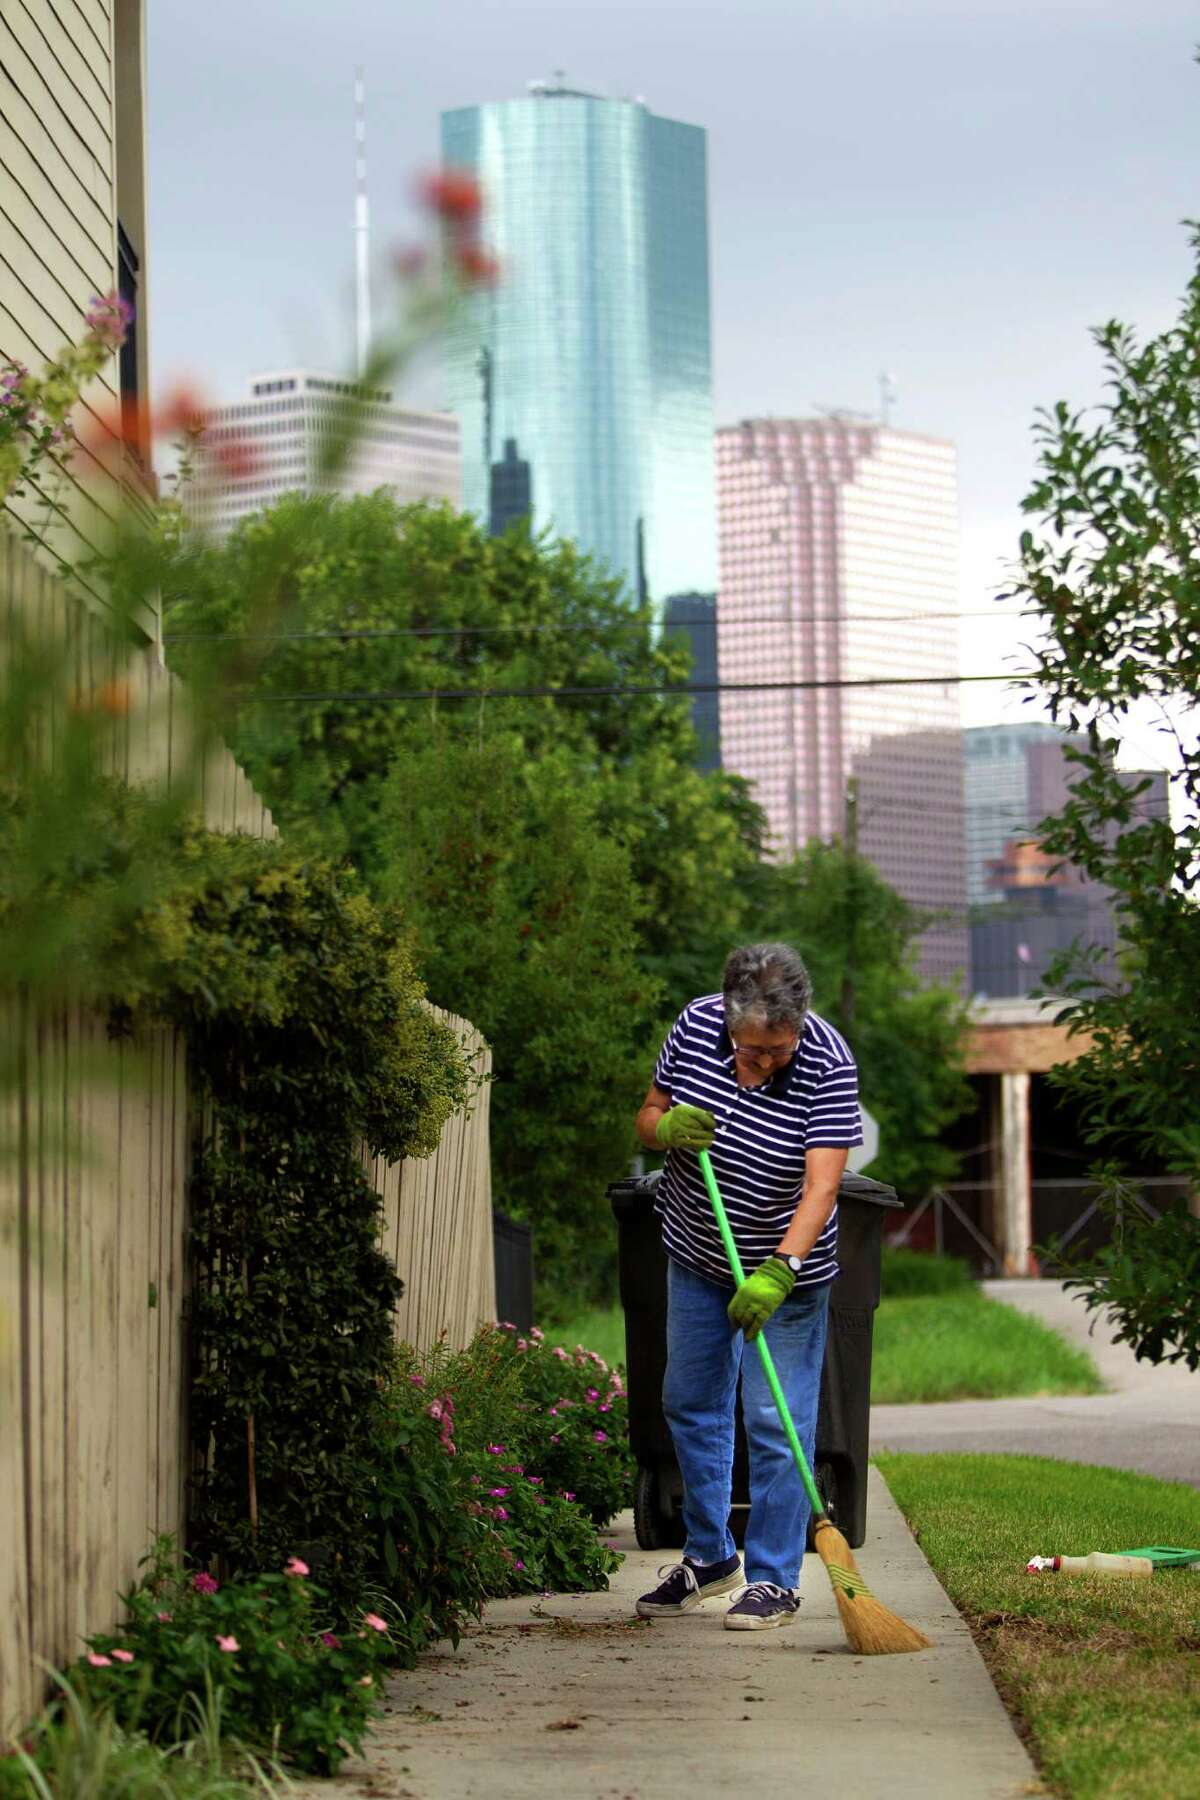 Marjorie Fruge sweeps her sidewalk next to her town home in the First Ward the Friday, Sept. 27, 2013, in Houston. Fruge said she likes the changes she's seen since she moved to the neighborhood in 2005.